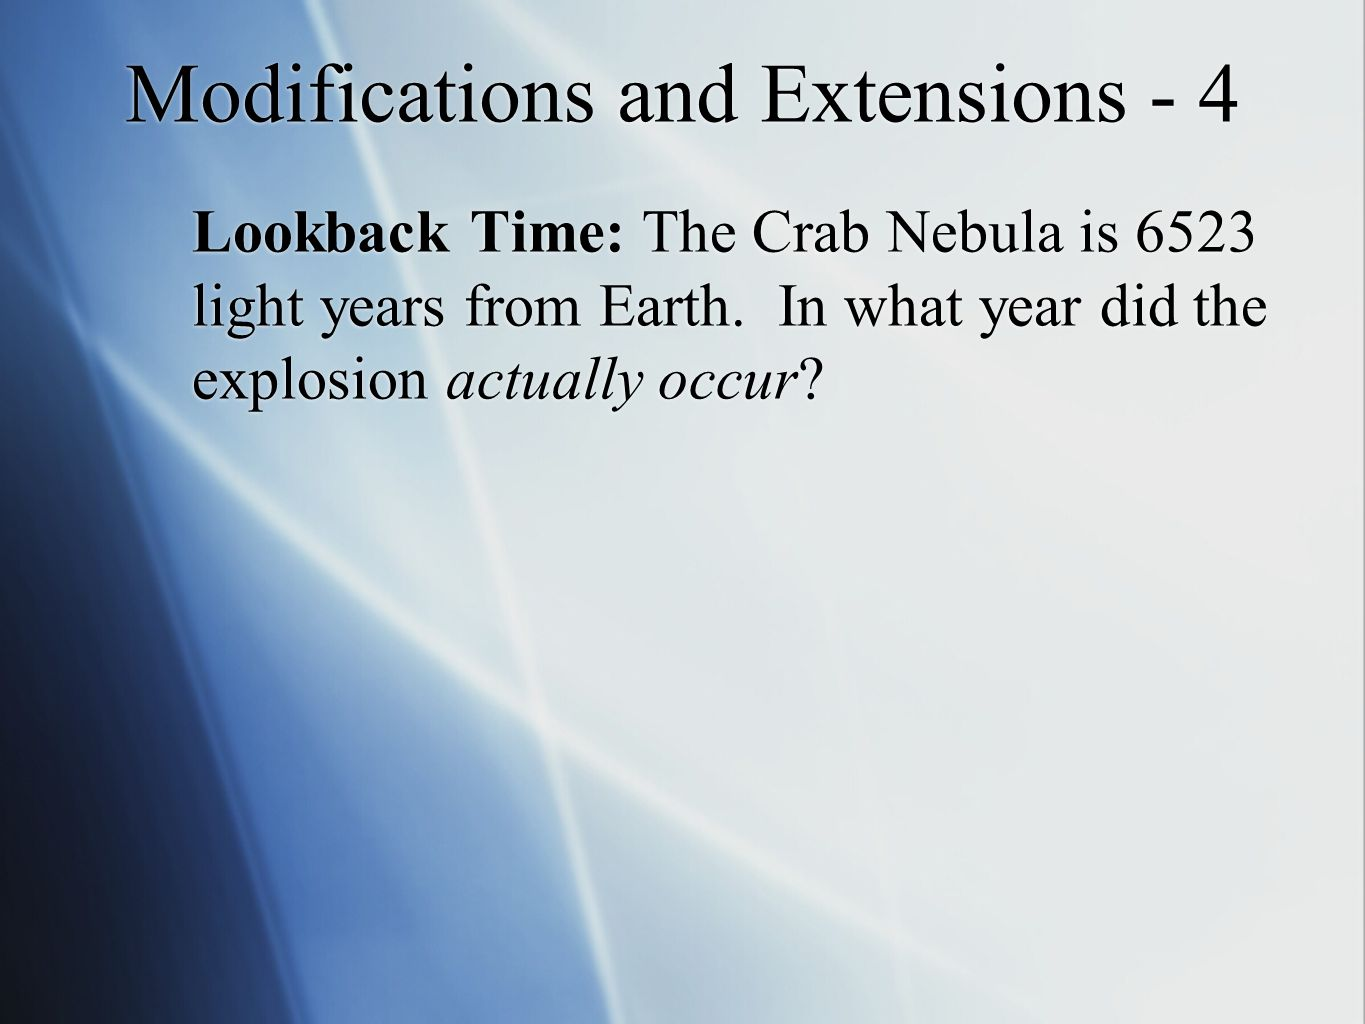 Modifications and Extensions - 4 Lookback Time: The Crab Nebula is 6523 light years from Earth.